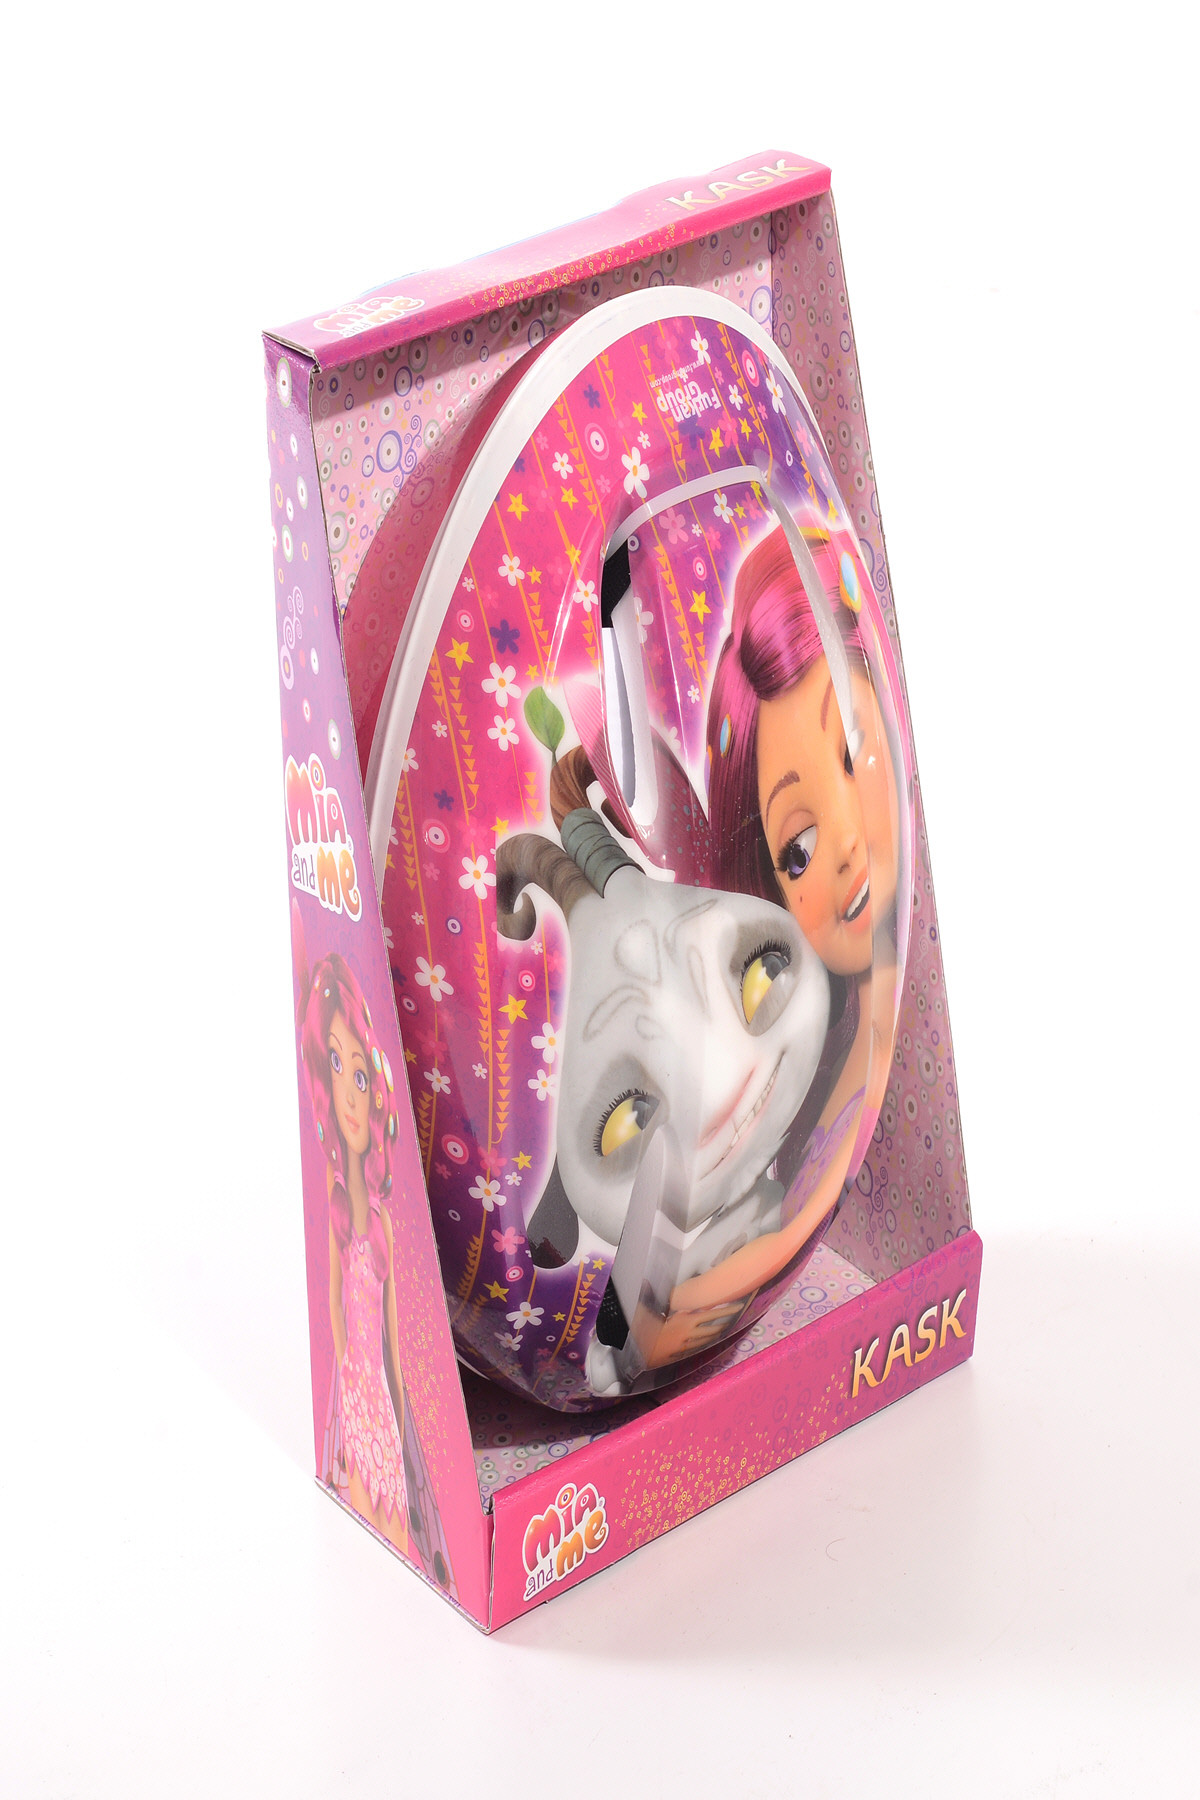 Furkan Toys 54514 Mia And Me Kask